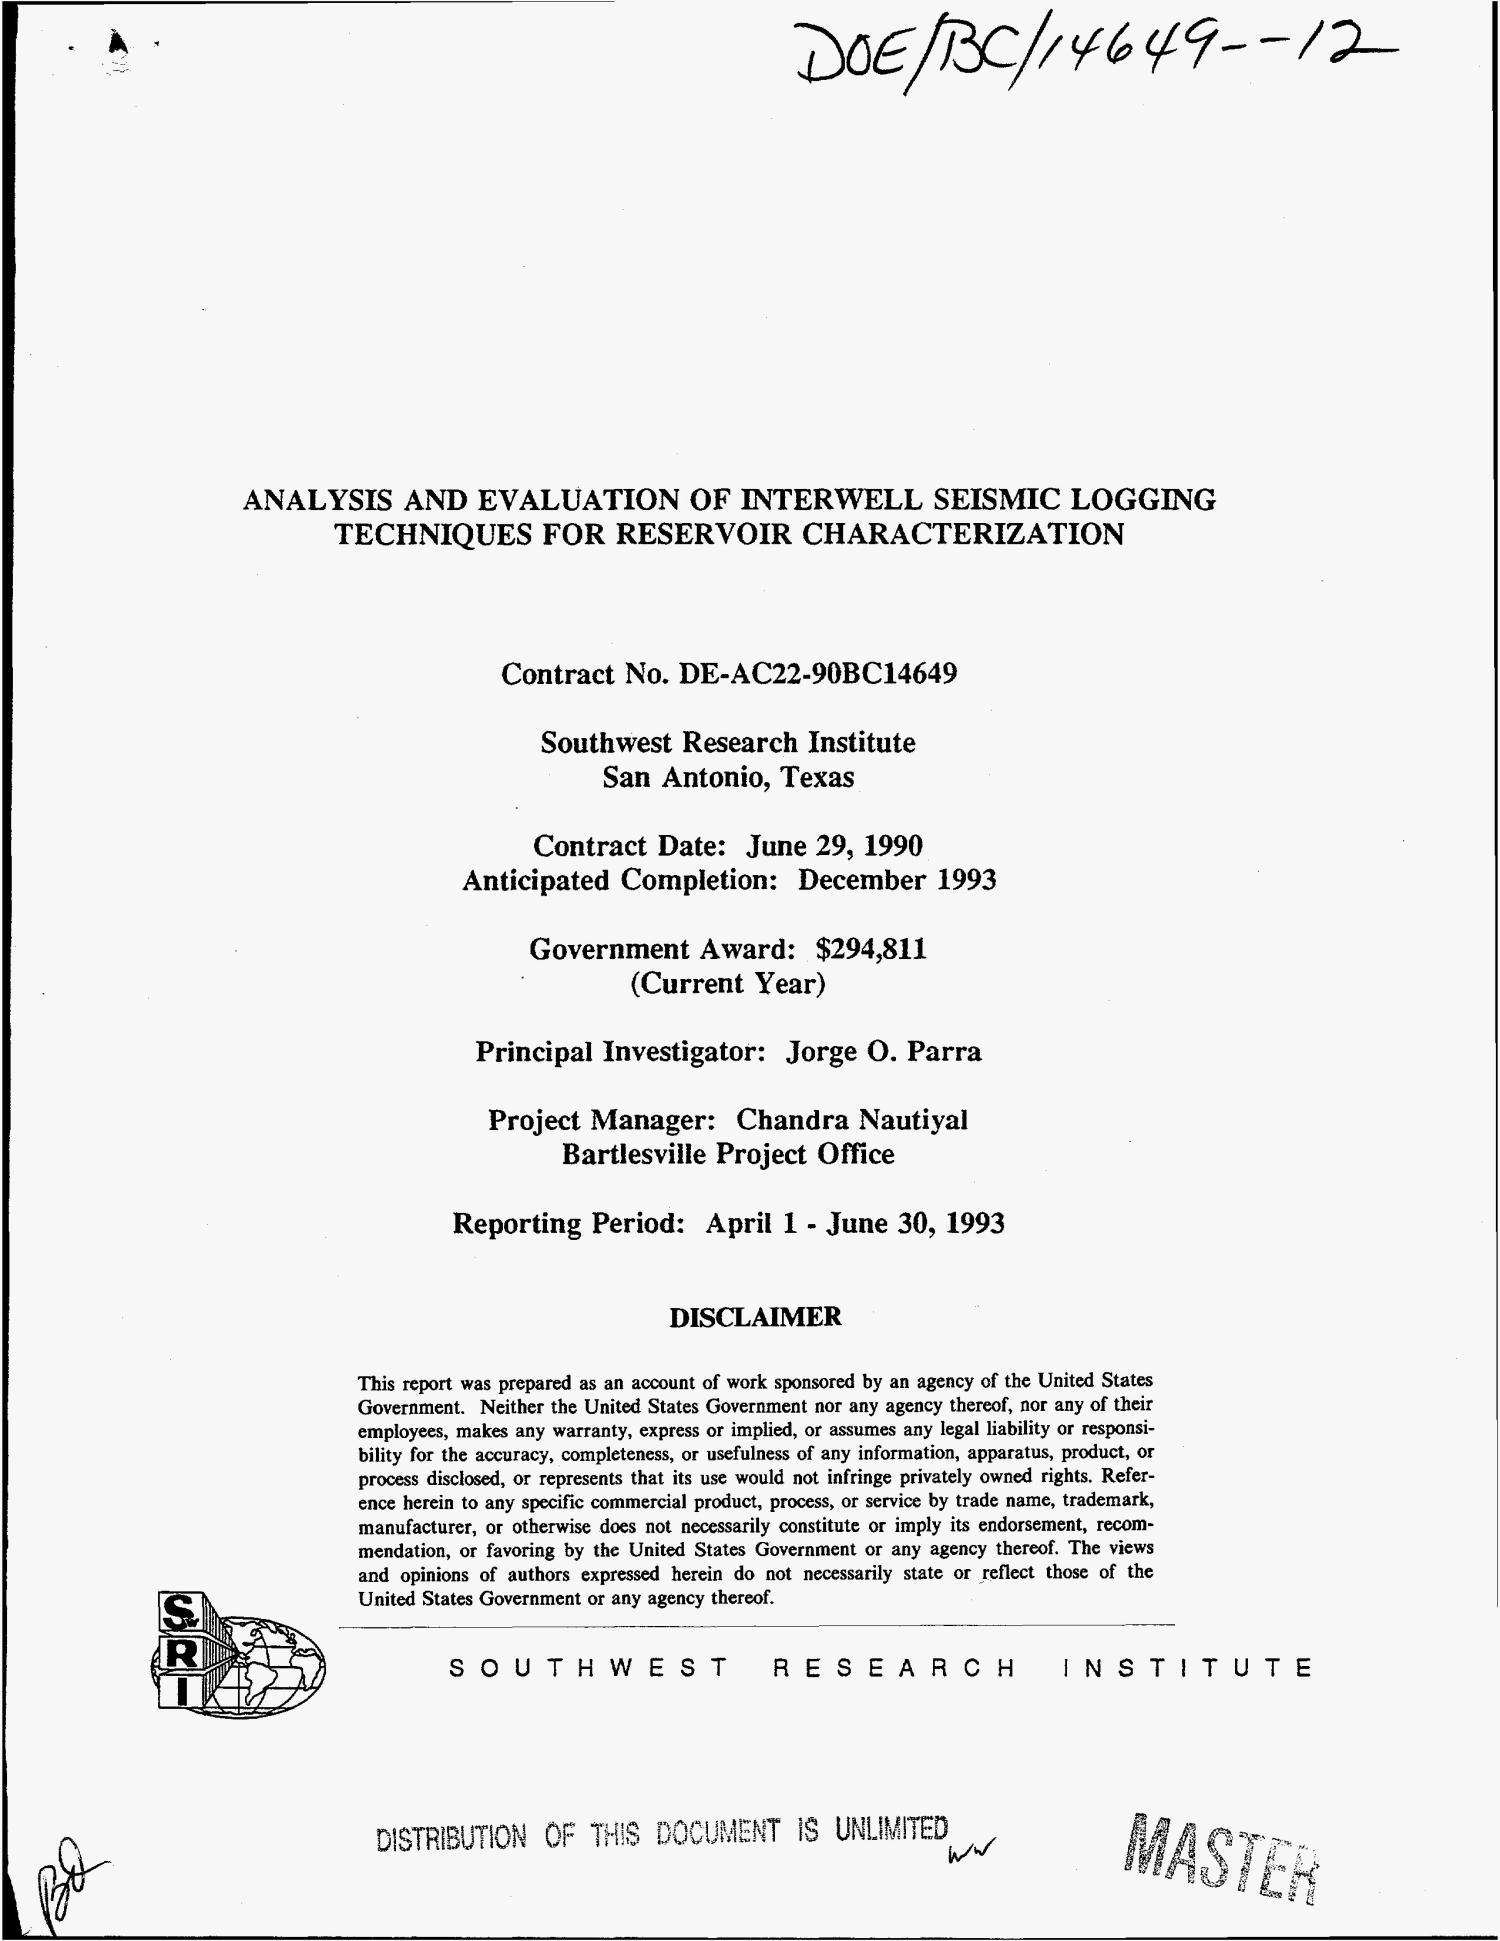 Analysis and evaluation of interwell seismic logging techniques for reservoir characterization. [Quarterly report], April 1--June 30, 1993                                                                                                      [Sequence #]: 1 of 15